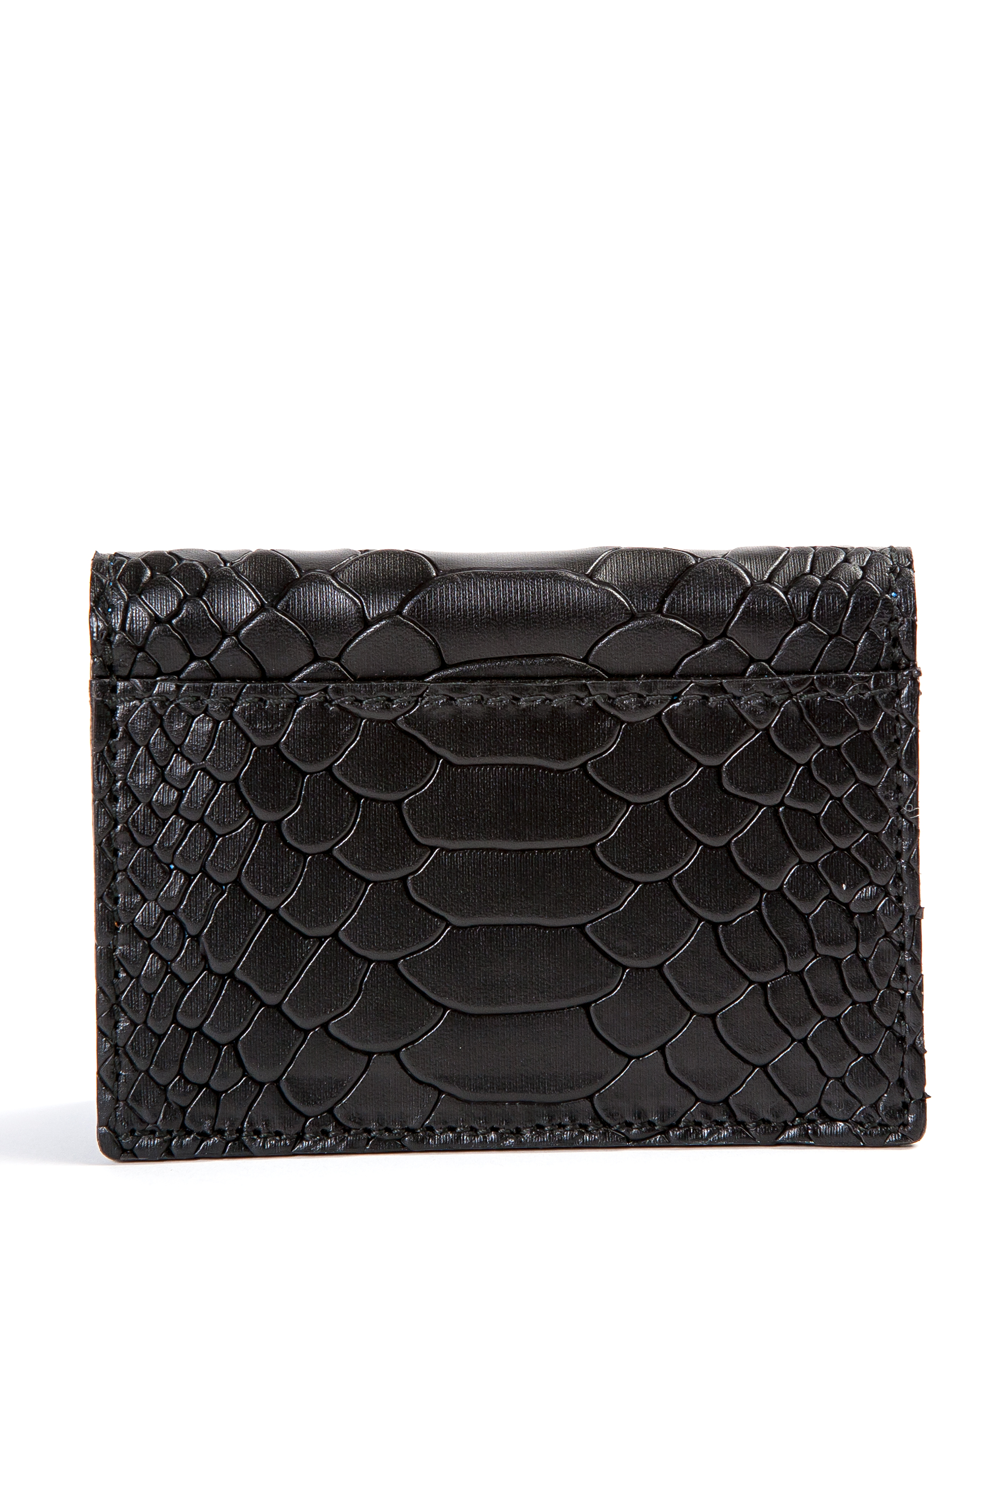 Mel Boteri | 'Nice To Meet You' Cardholder | Black Snake Print Leather | Back